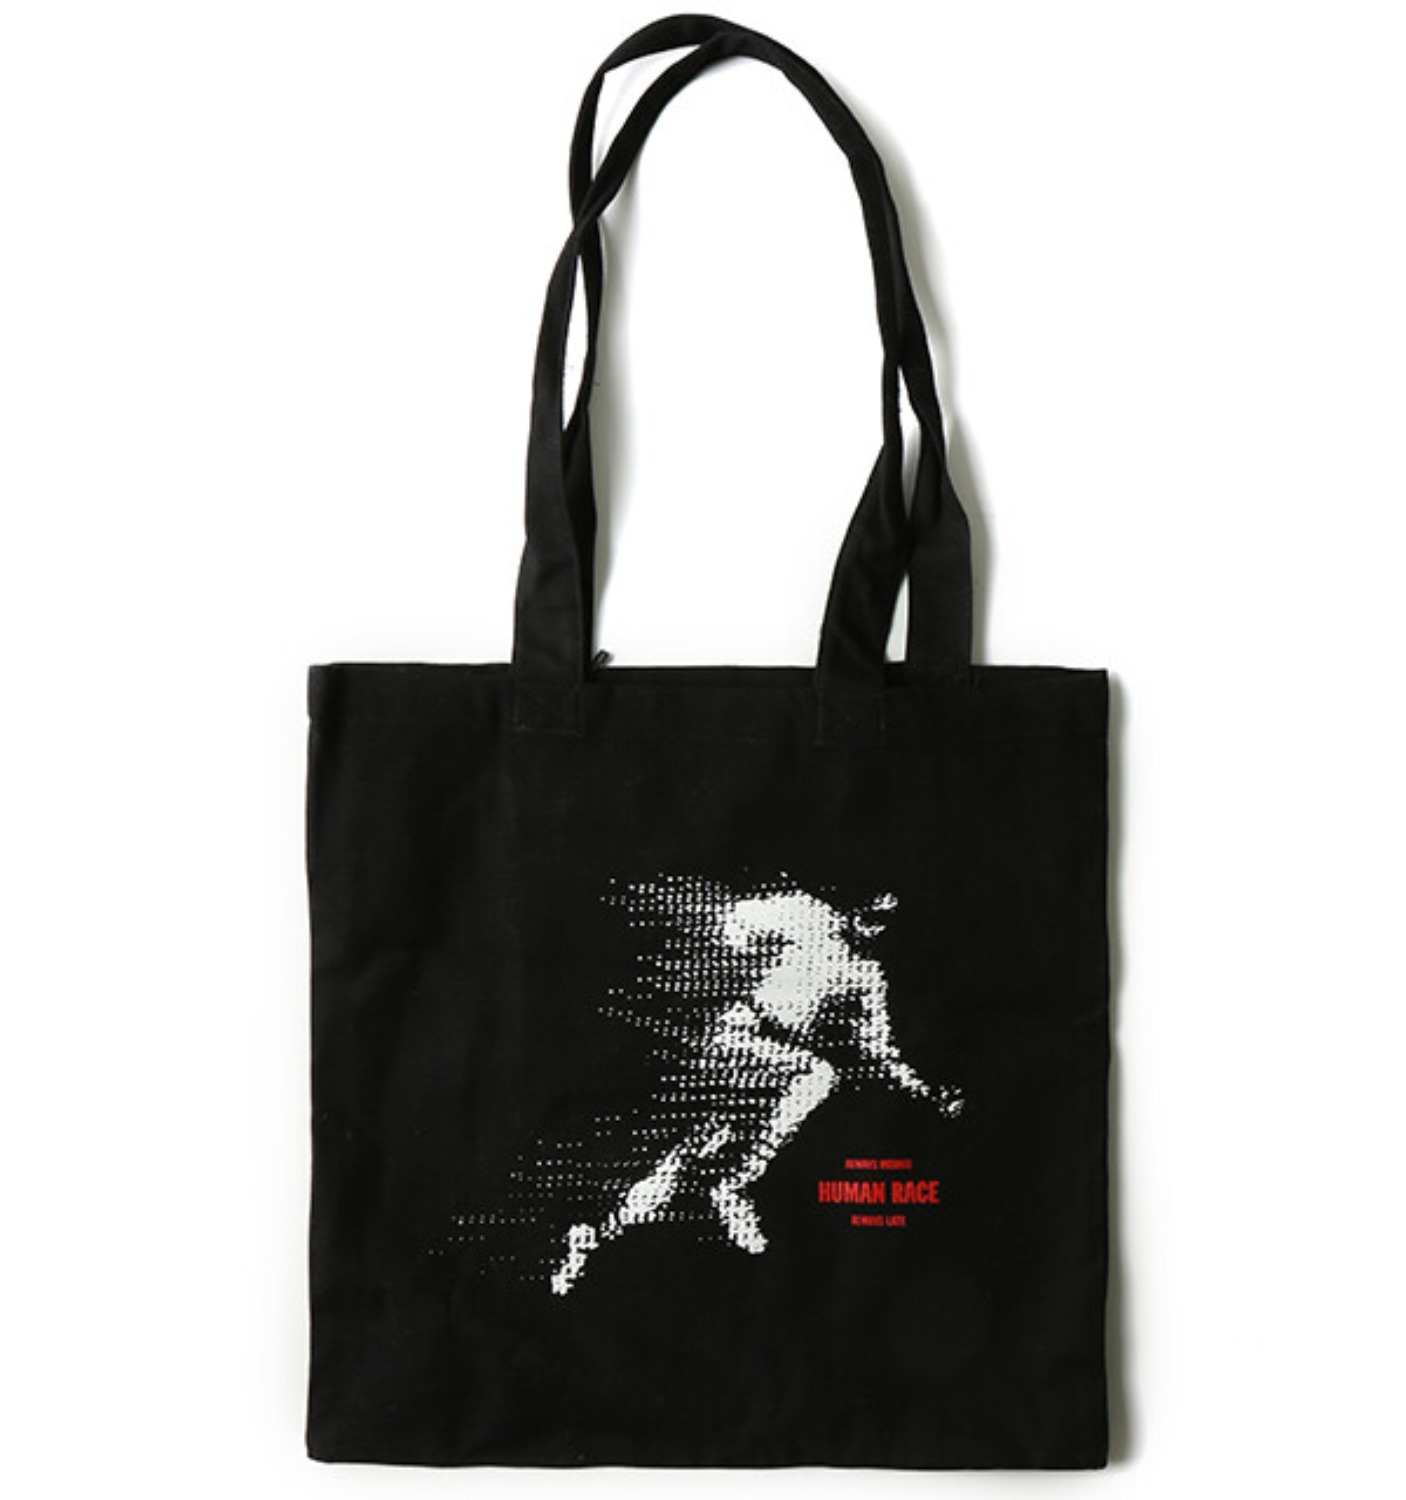 HUMAN RACE TOTE BAG